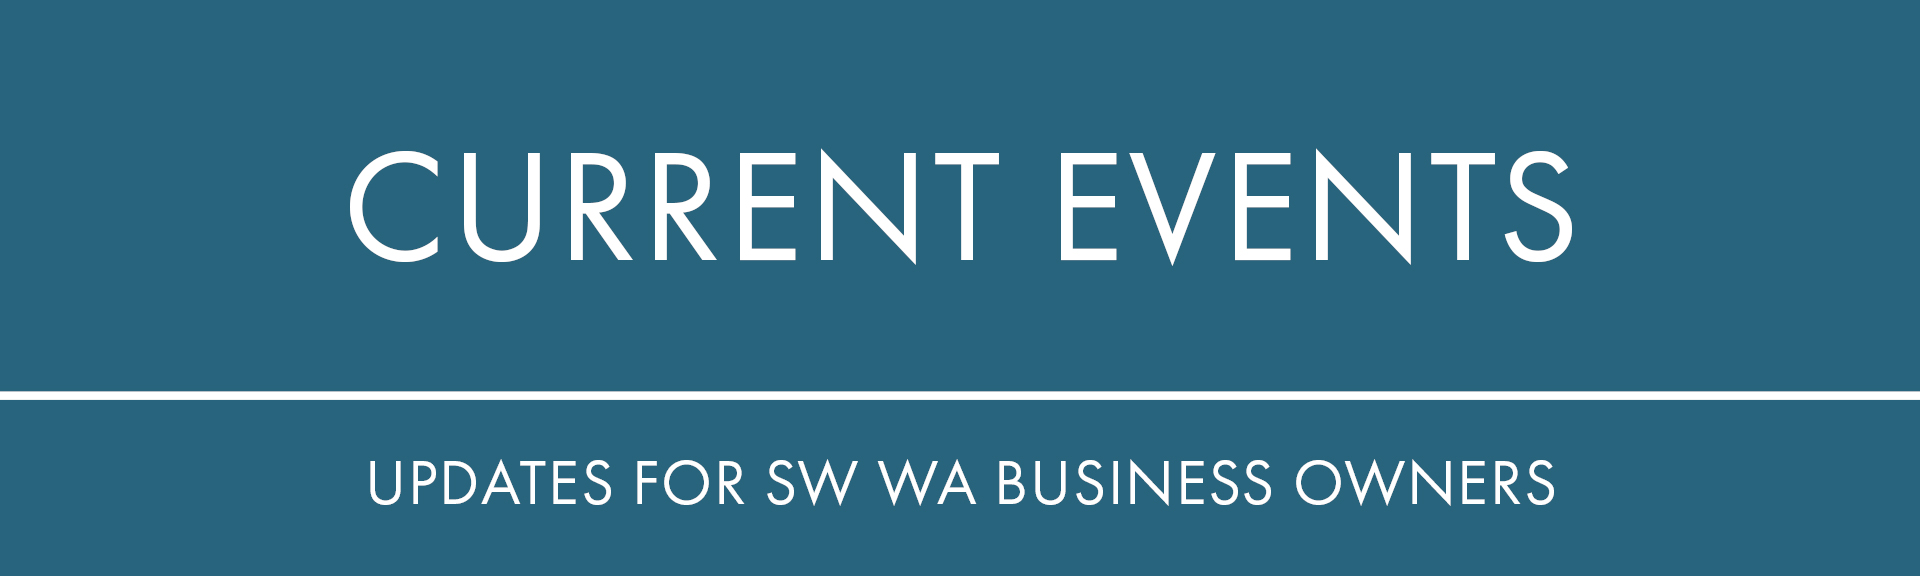 greater vancouver chamber of commerce current events updates for sw wa business owners team this is how i chamber legislative review public affairs topics